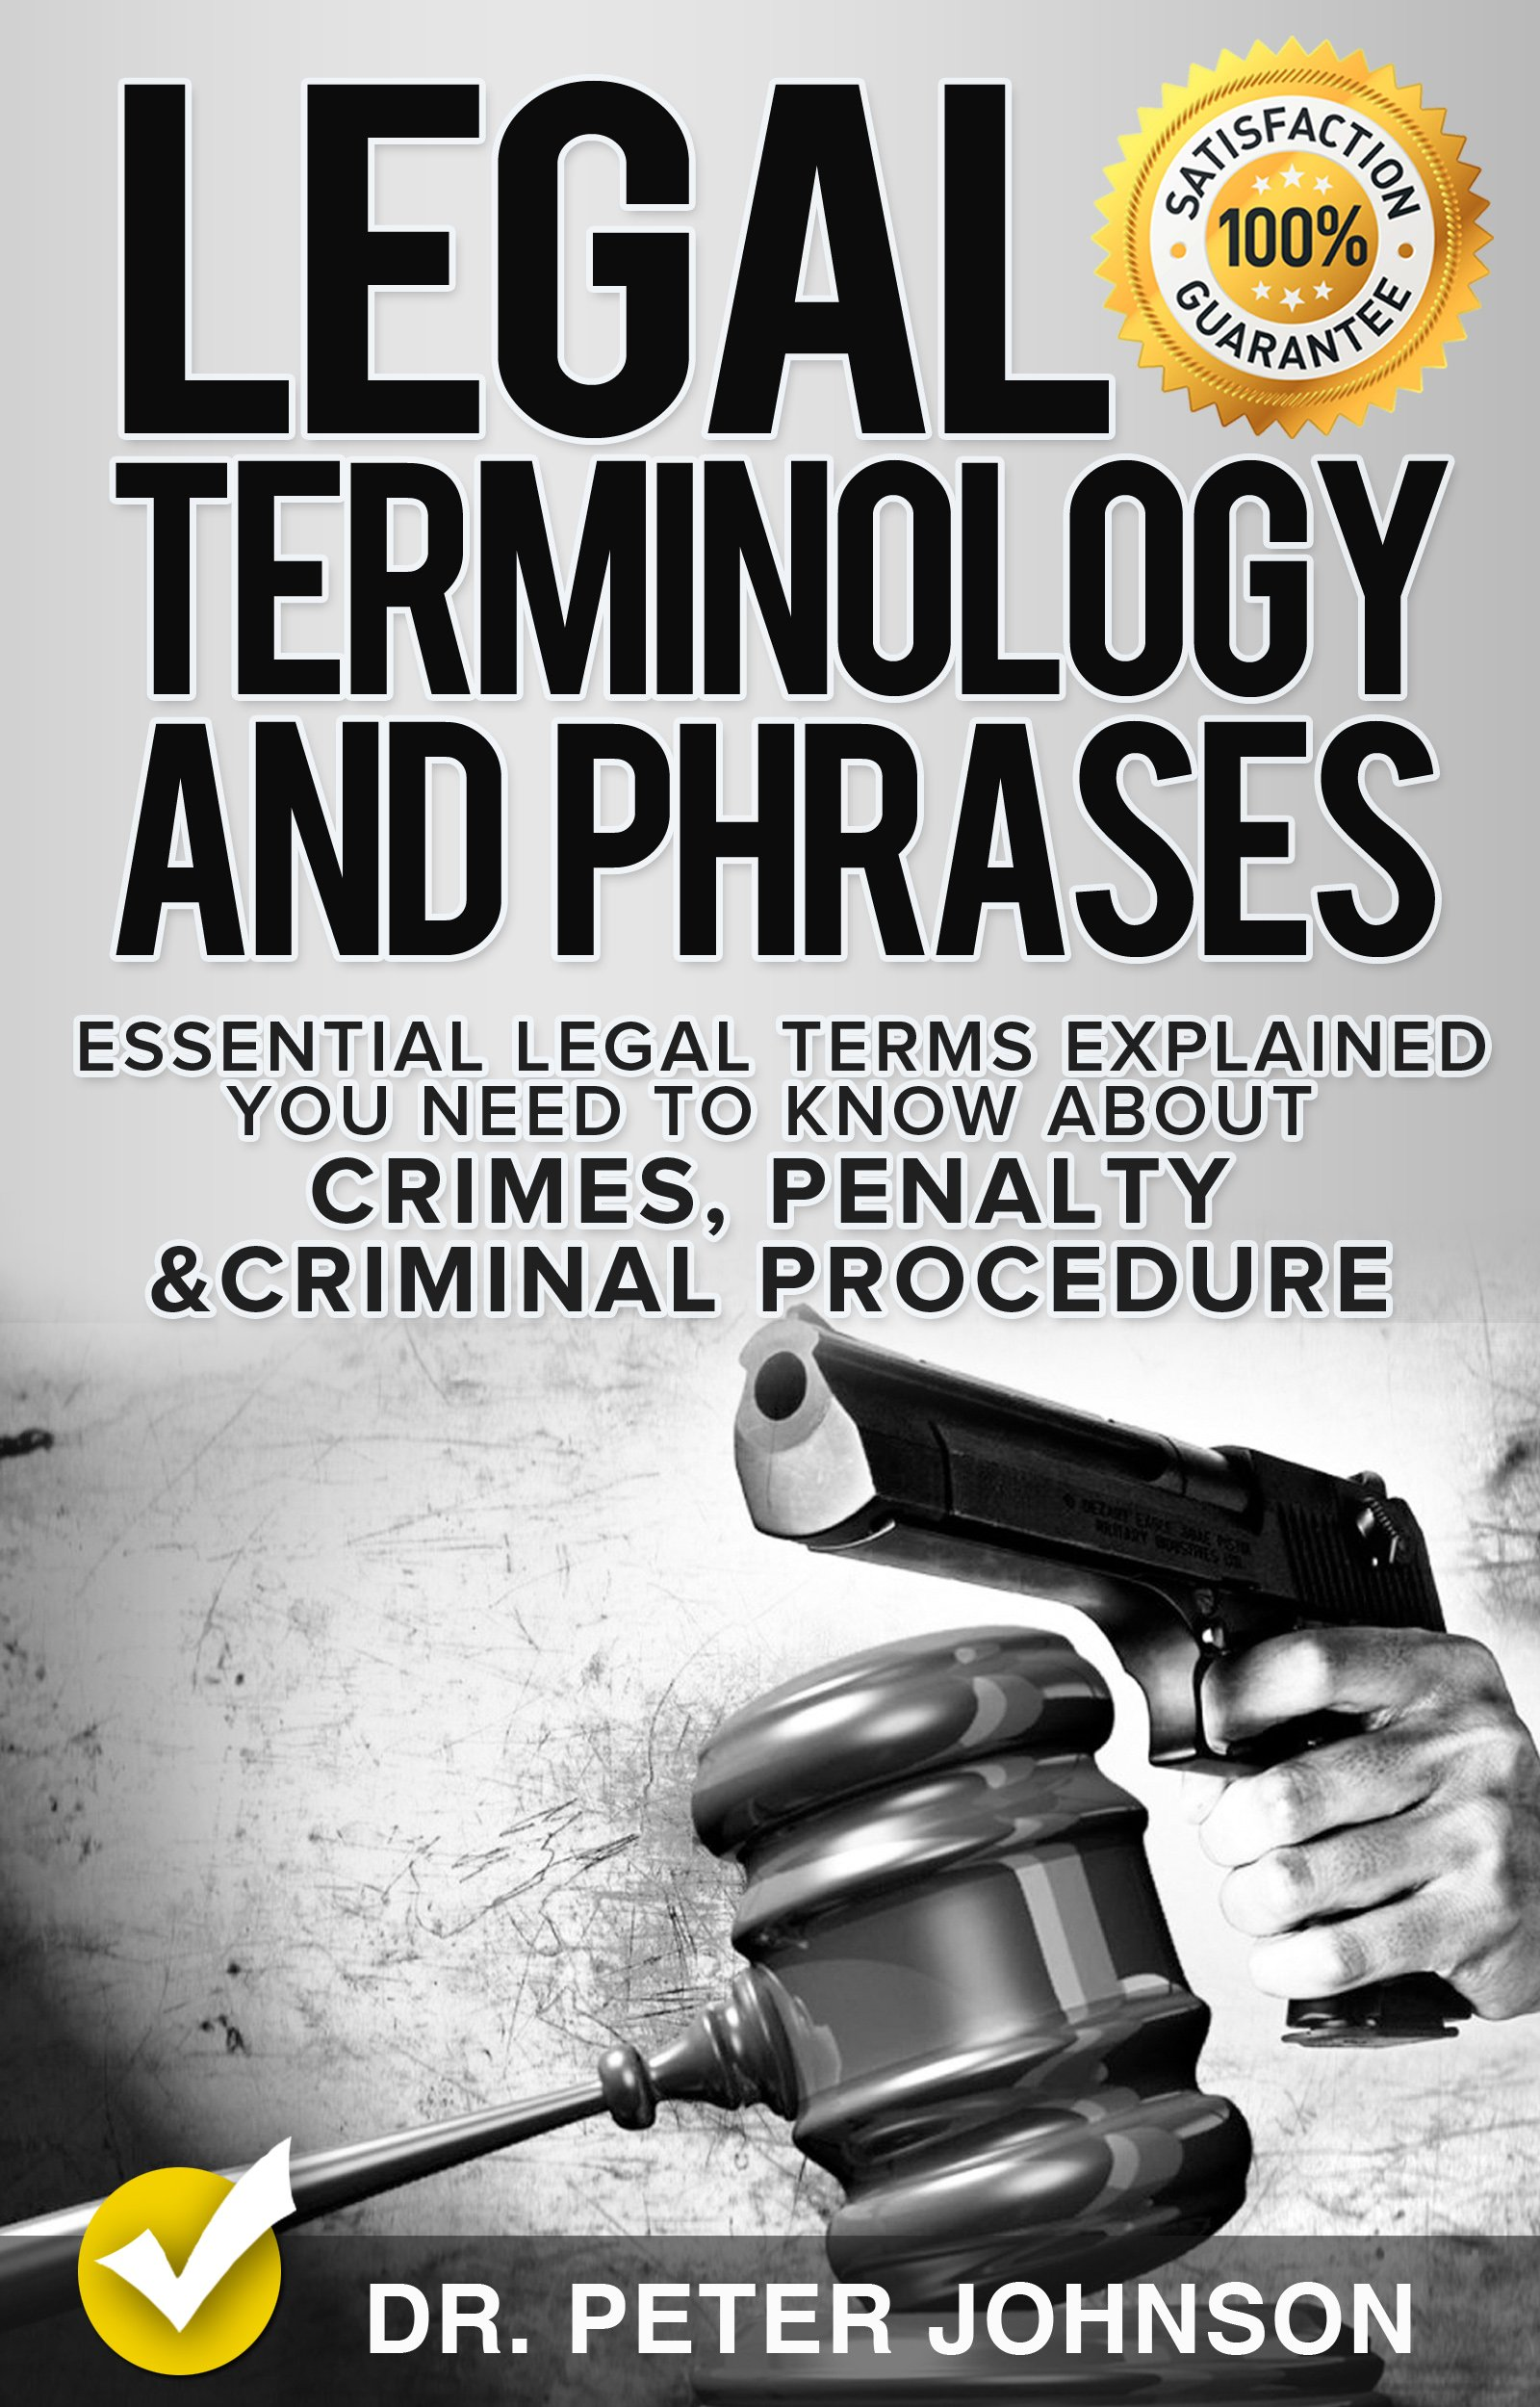 Image OfLegal Terminology And Phrases: Essential Legal Terms Explained You Need To Know About Crimes, Penalty And Criminal Procedure